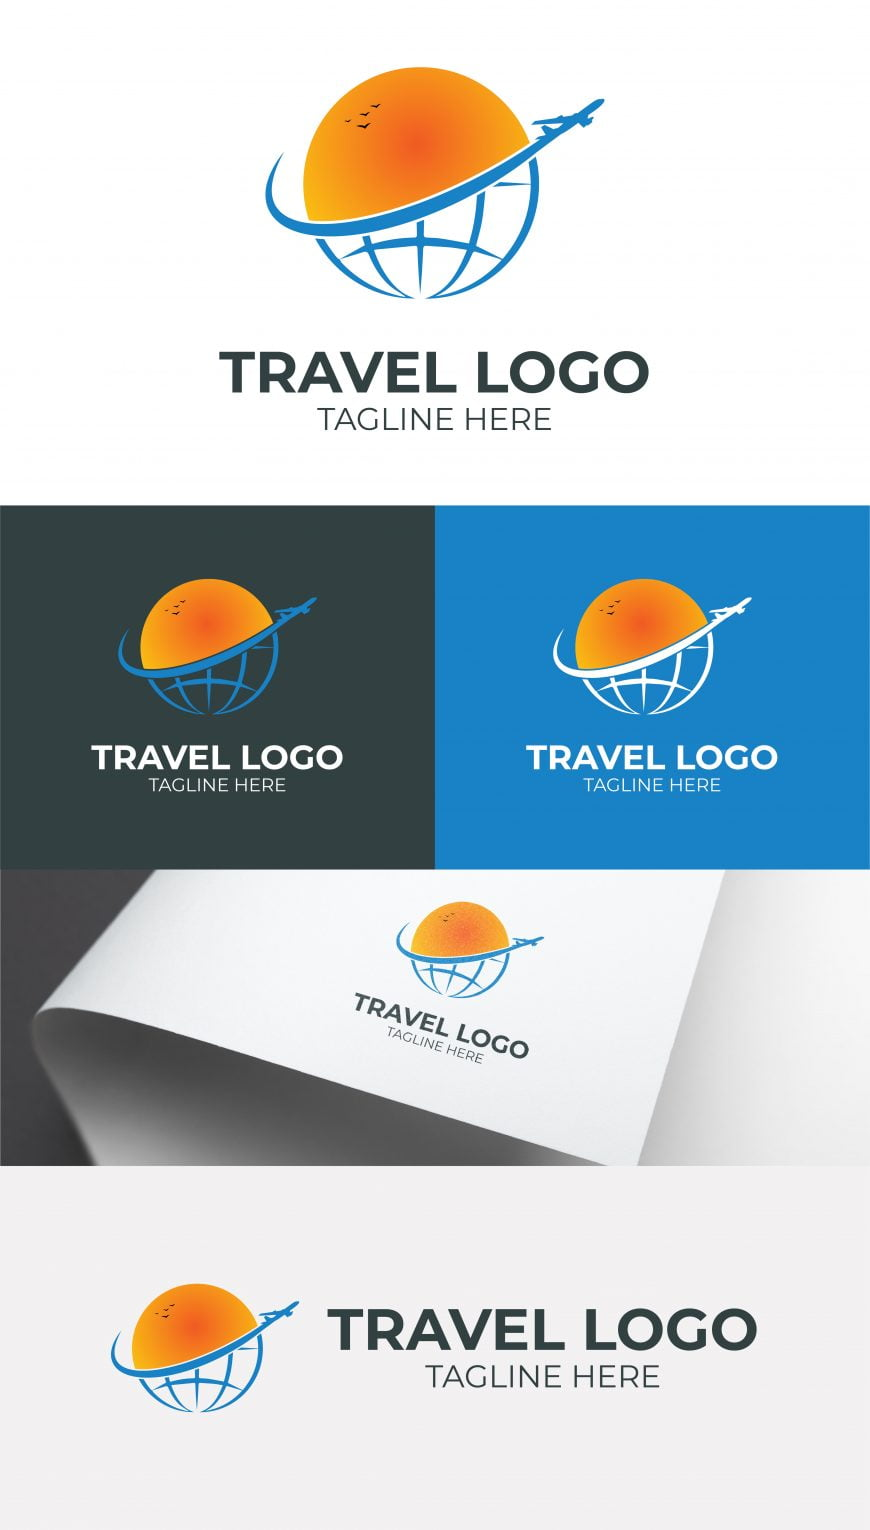 TRAVEL LOGO FREE TEMPLATE